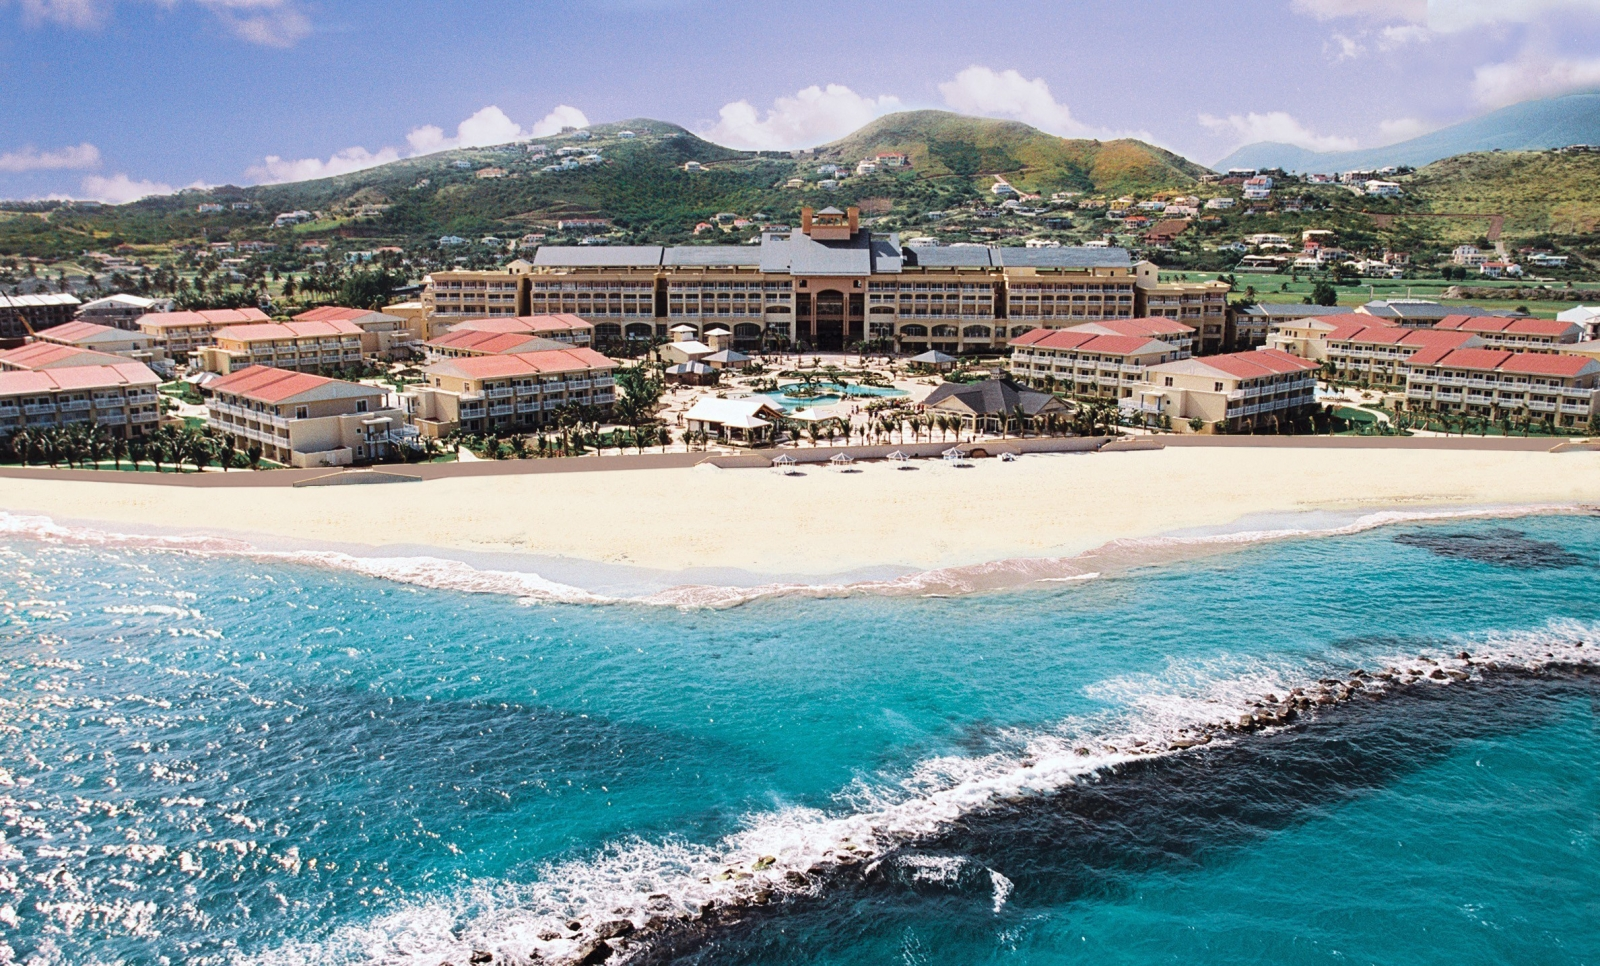 The Marriott Resort St. Kitts, my first major hotel redemption